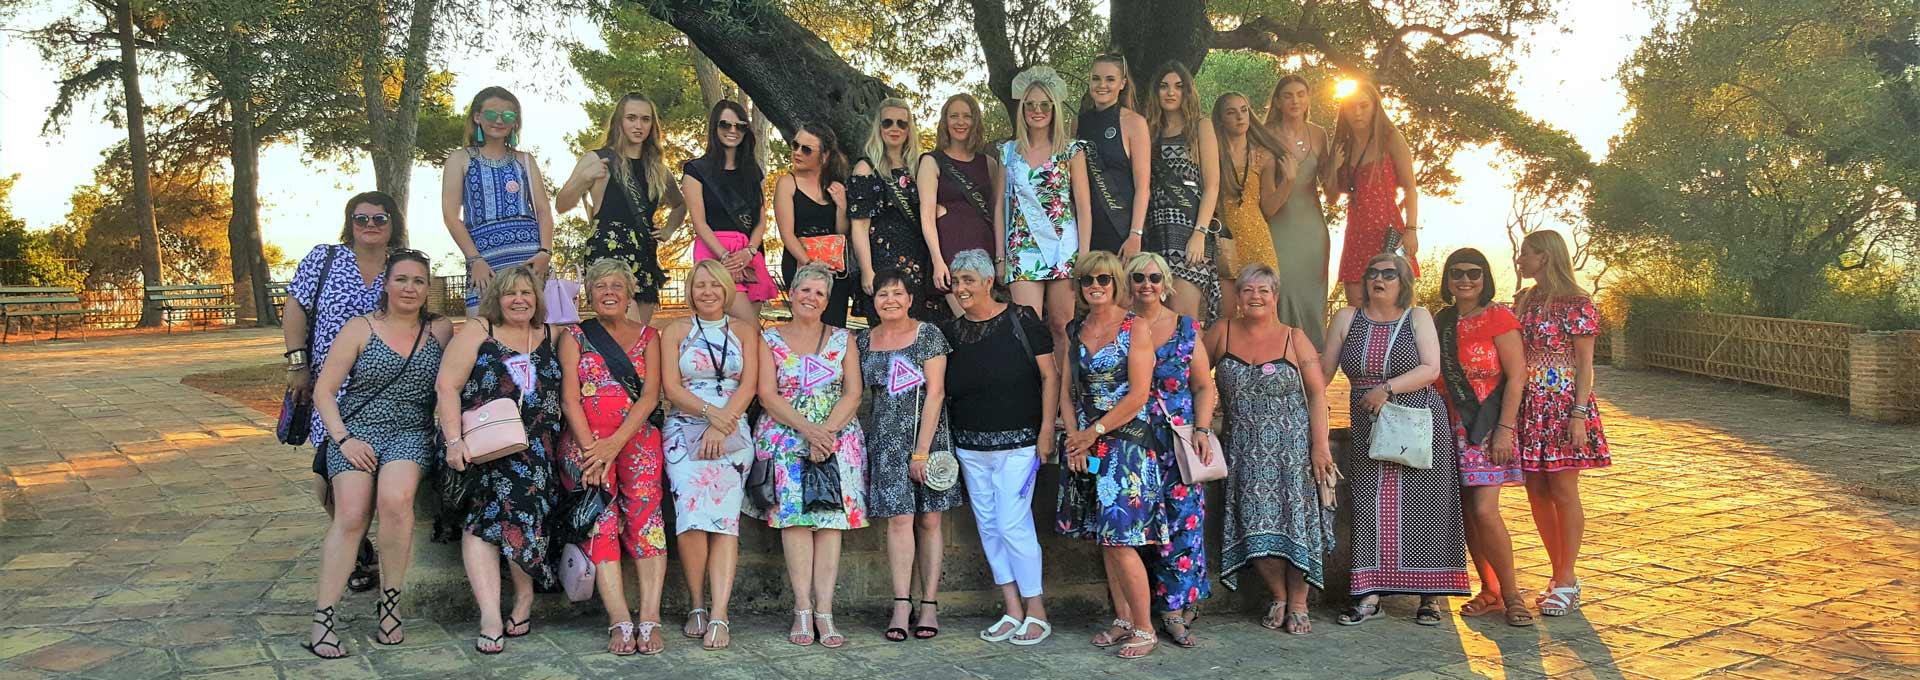 Hen party in Zakynthos Zante